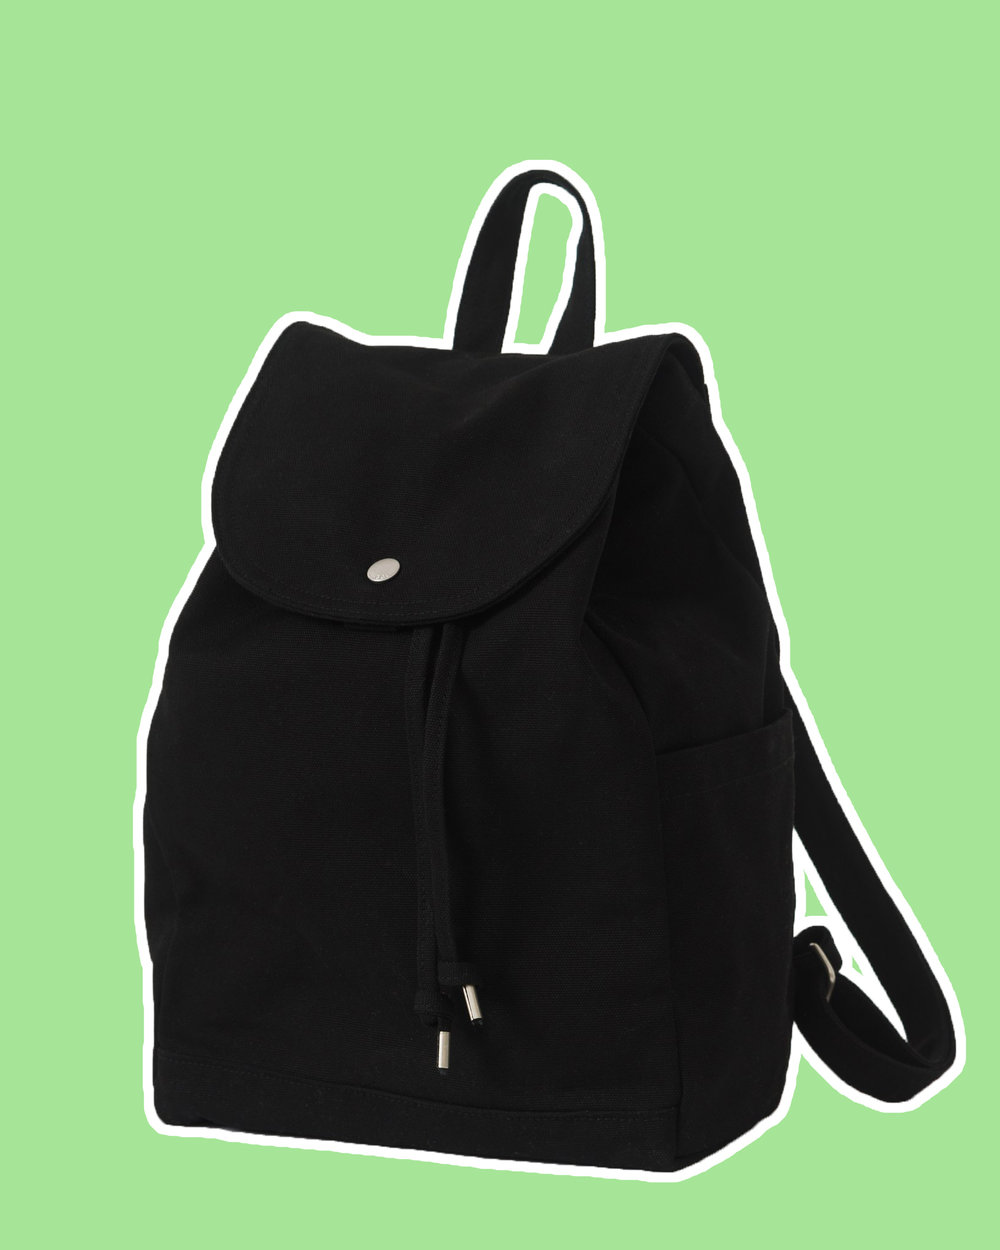 Drawstring Backpack.jpg